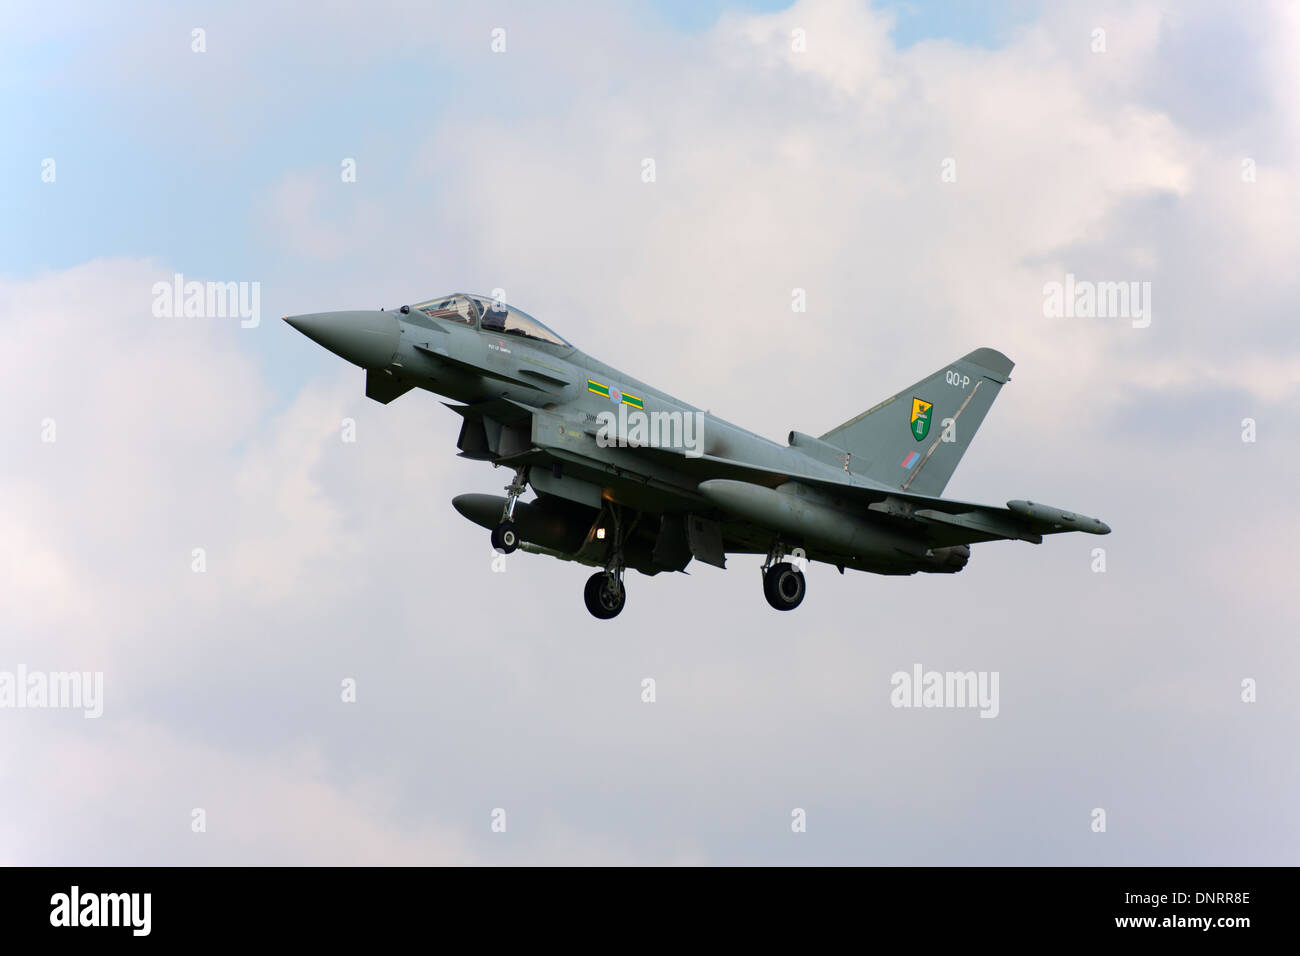 Eurofighter Typhoon FGR4 on final approach to land - Stock Image